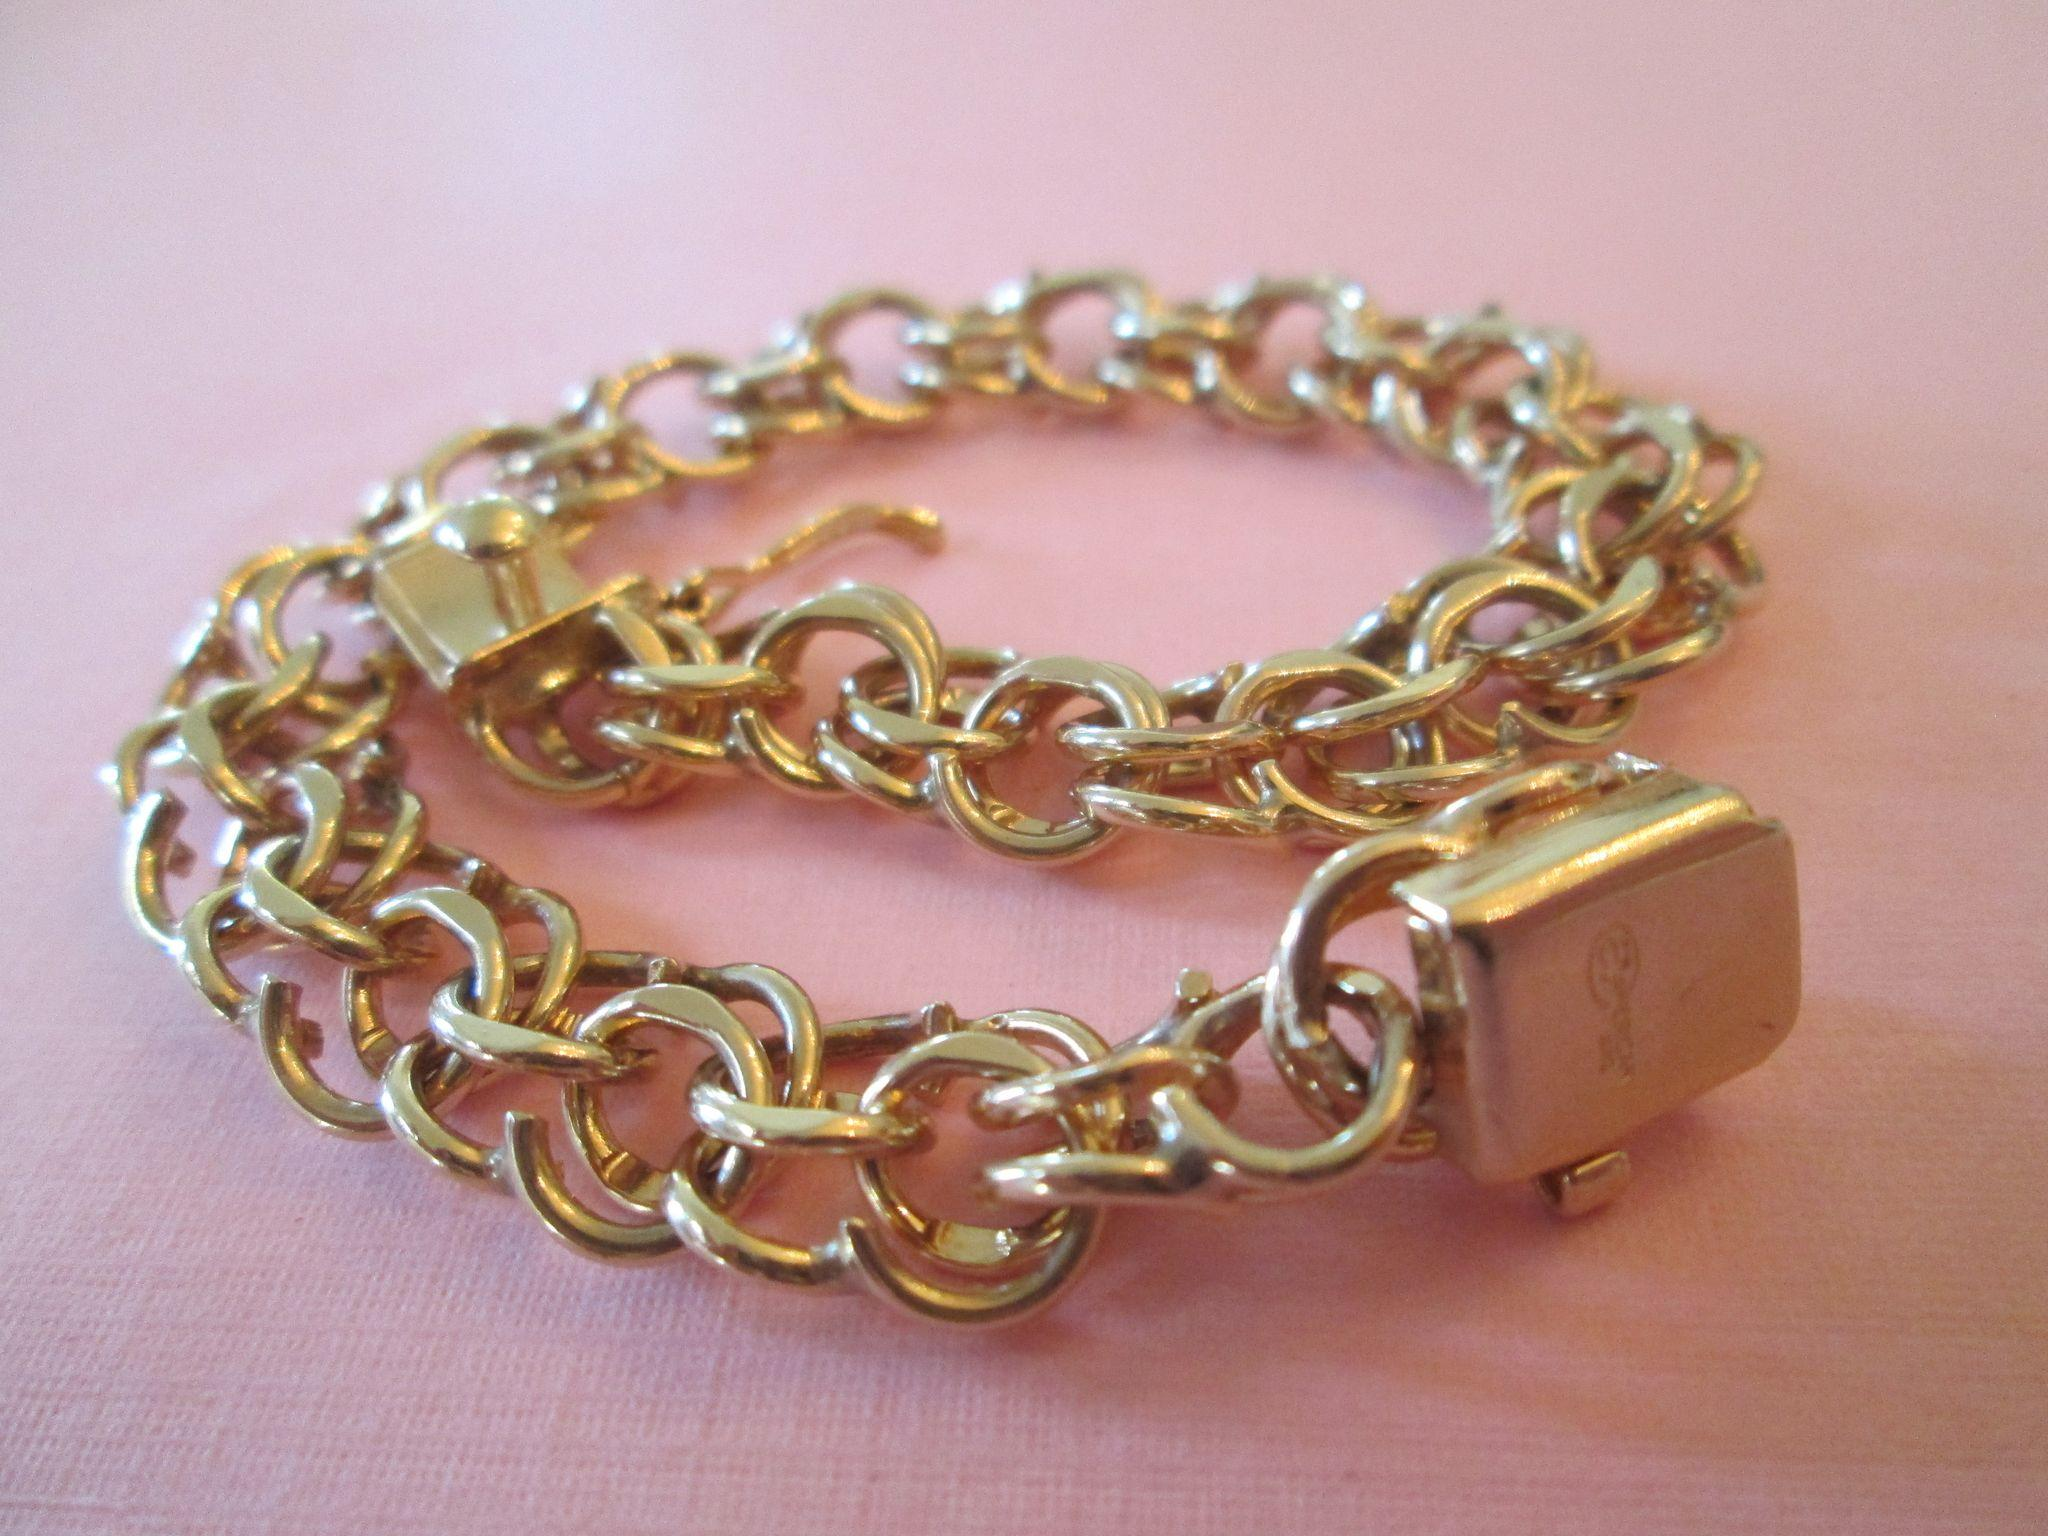 1950s Heavy 14K Double Link Charm Bracelet 24 5 Grams 7 75 Inches